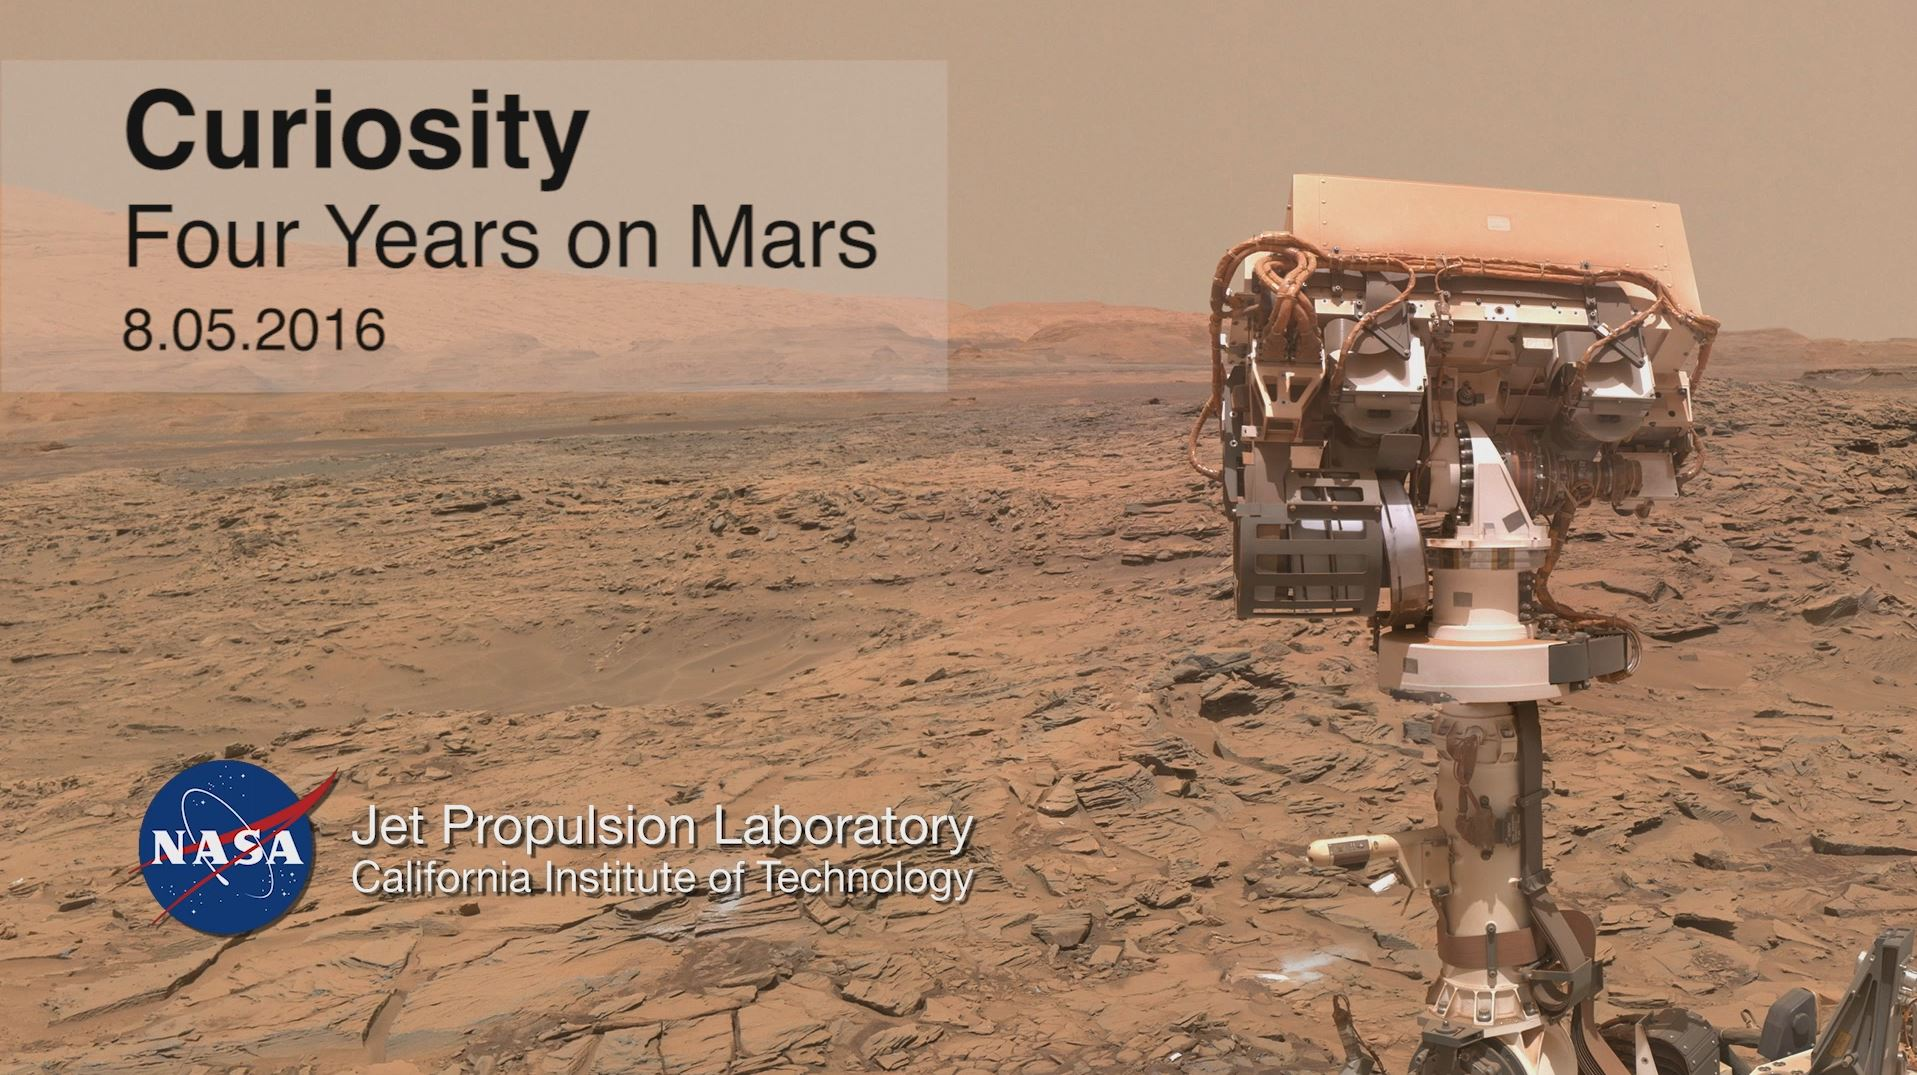 see the image 'Curiosity Rover Report: Four Years on Mars'